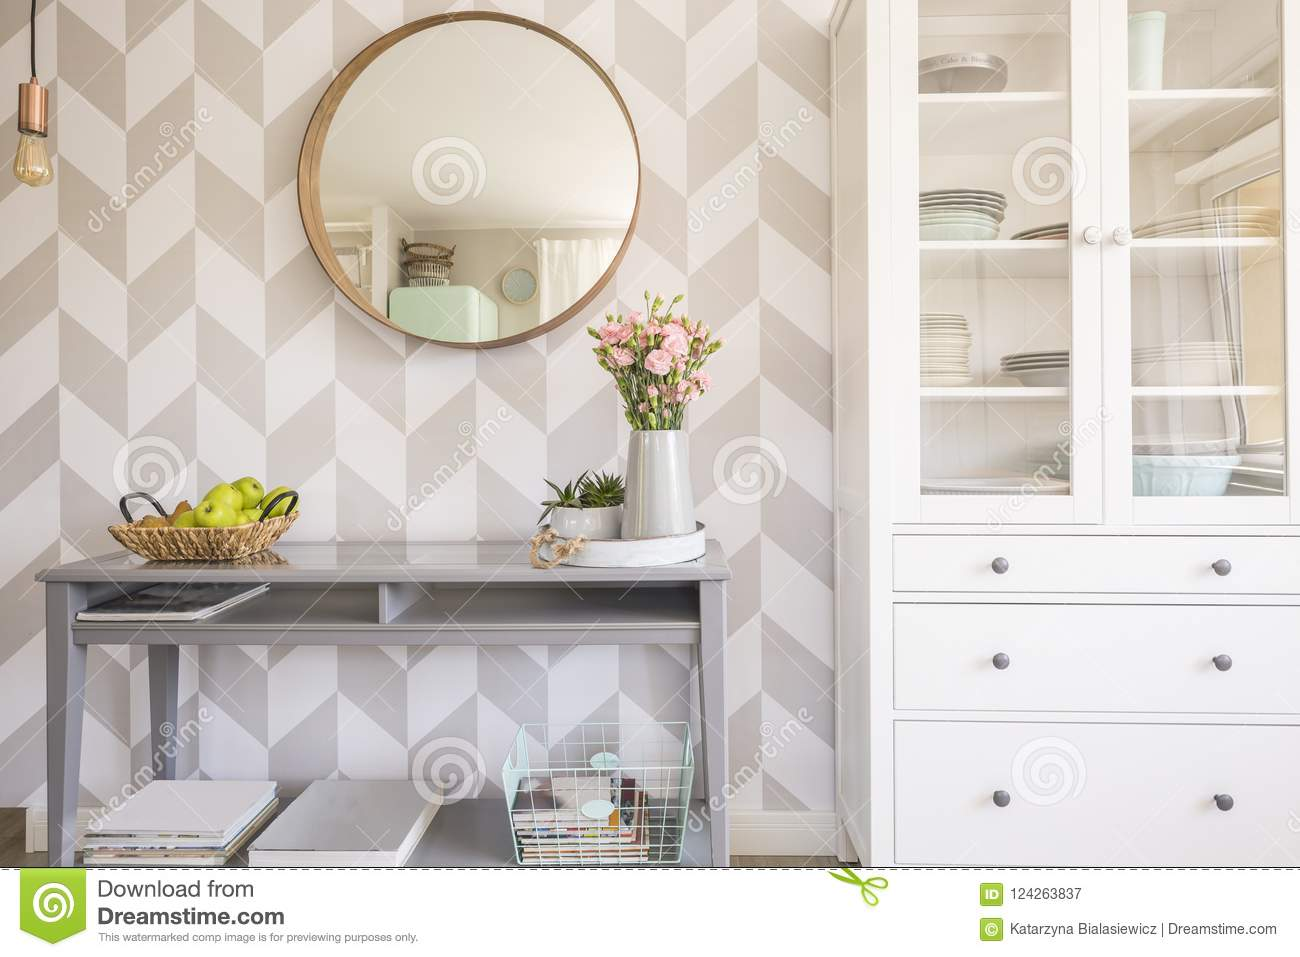 Mirror on patterned wallpaper above grey table with flowers in s